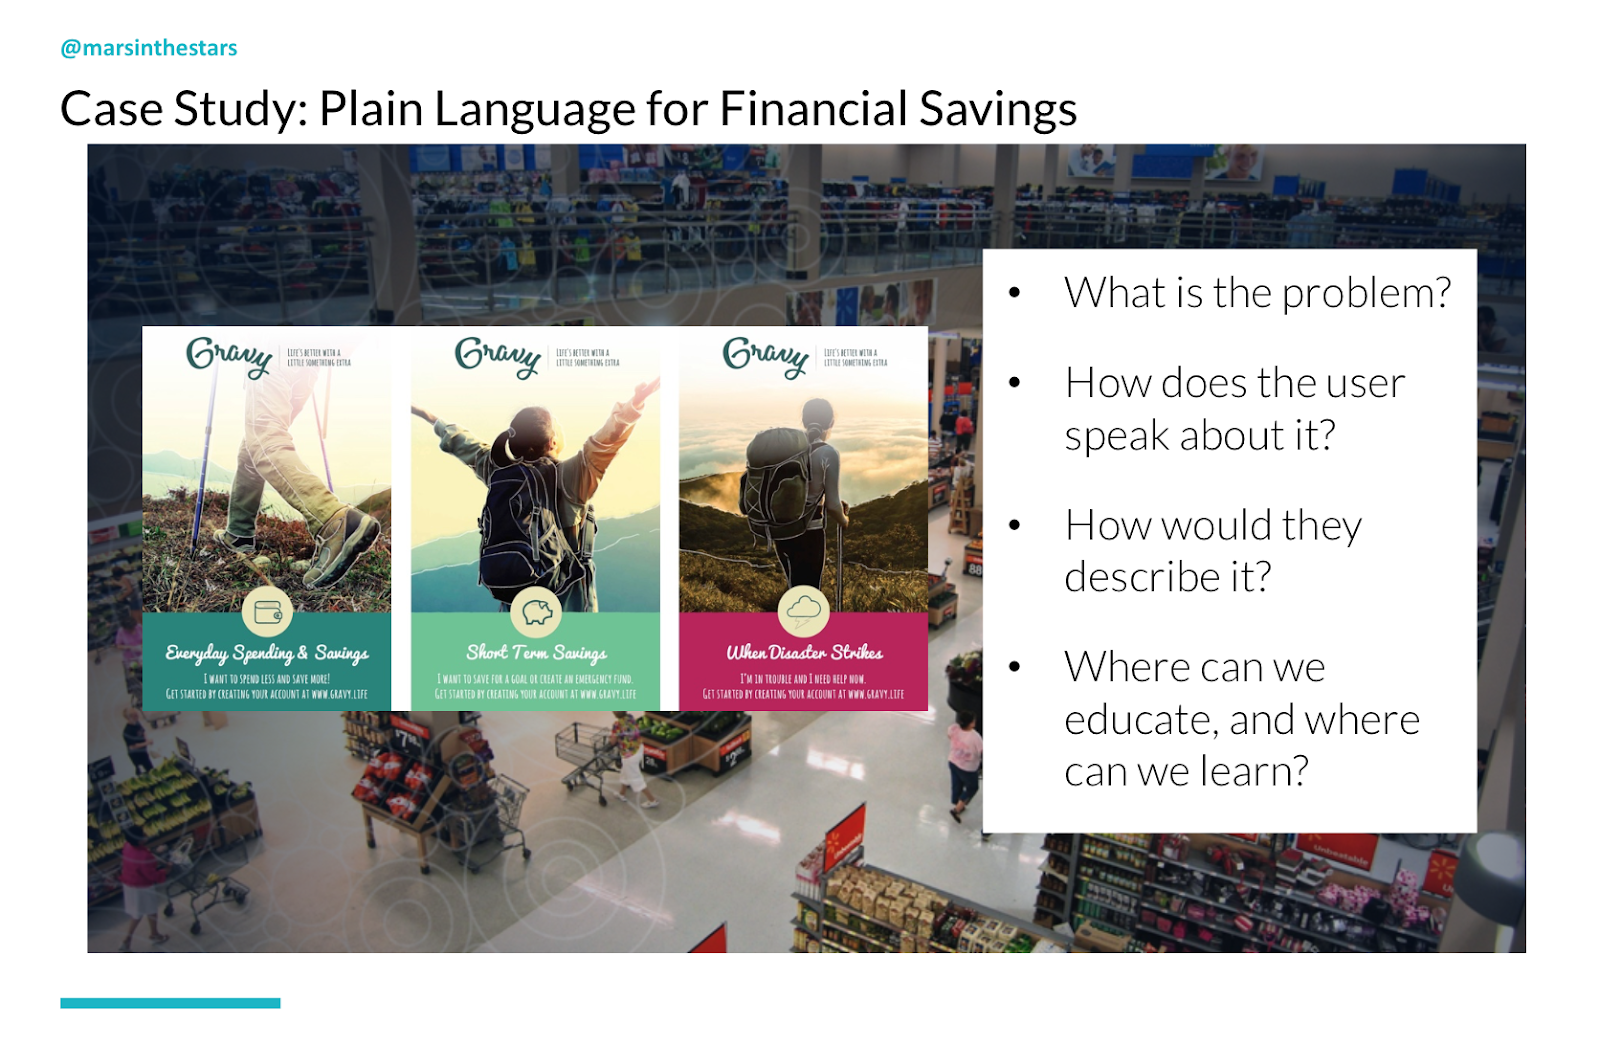 Slides shos a financial savings website page. Questions to ask: What is the problem? How does the user speak about it? How would they describe it? Where can we educate, and where can we learn?